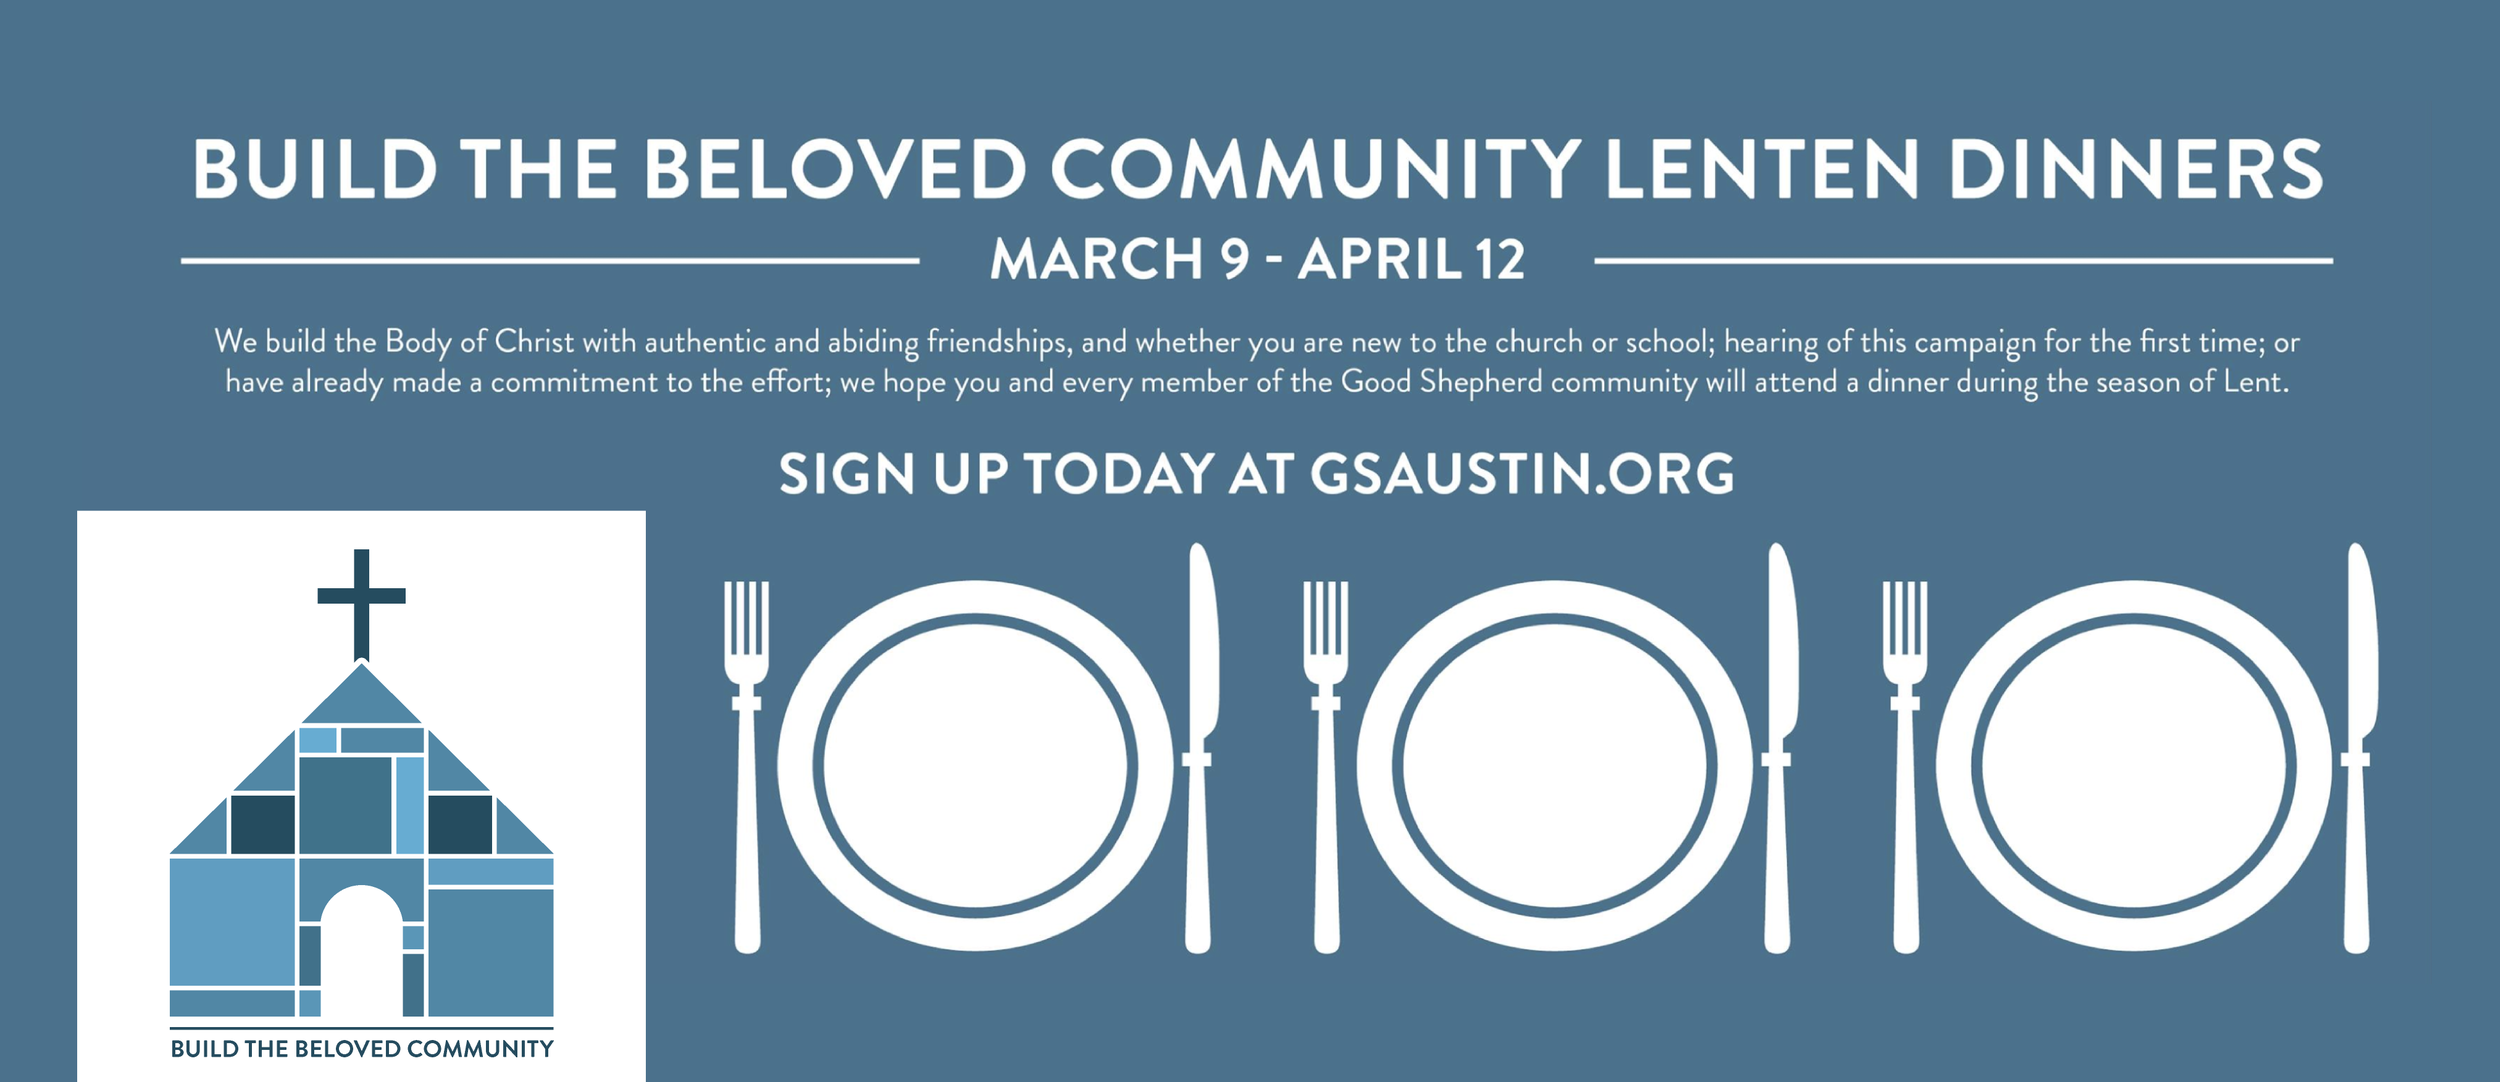 An example of a facebook cover banner created during the campaign to promote Lenten dinners.